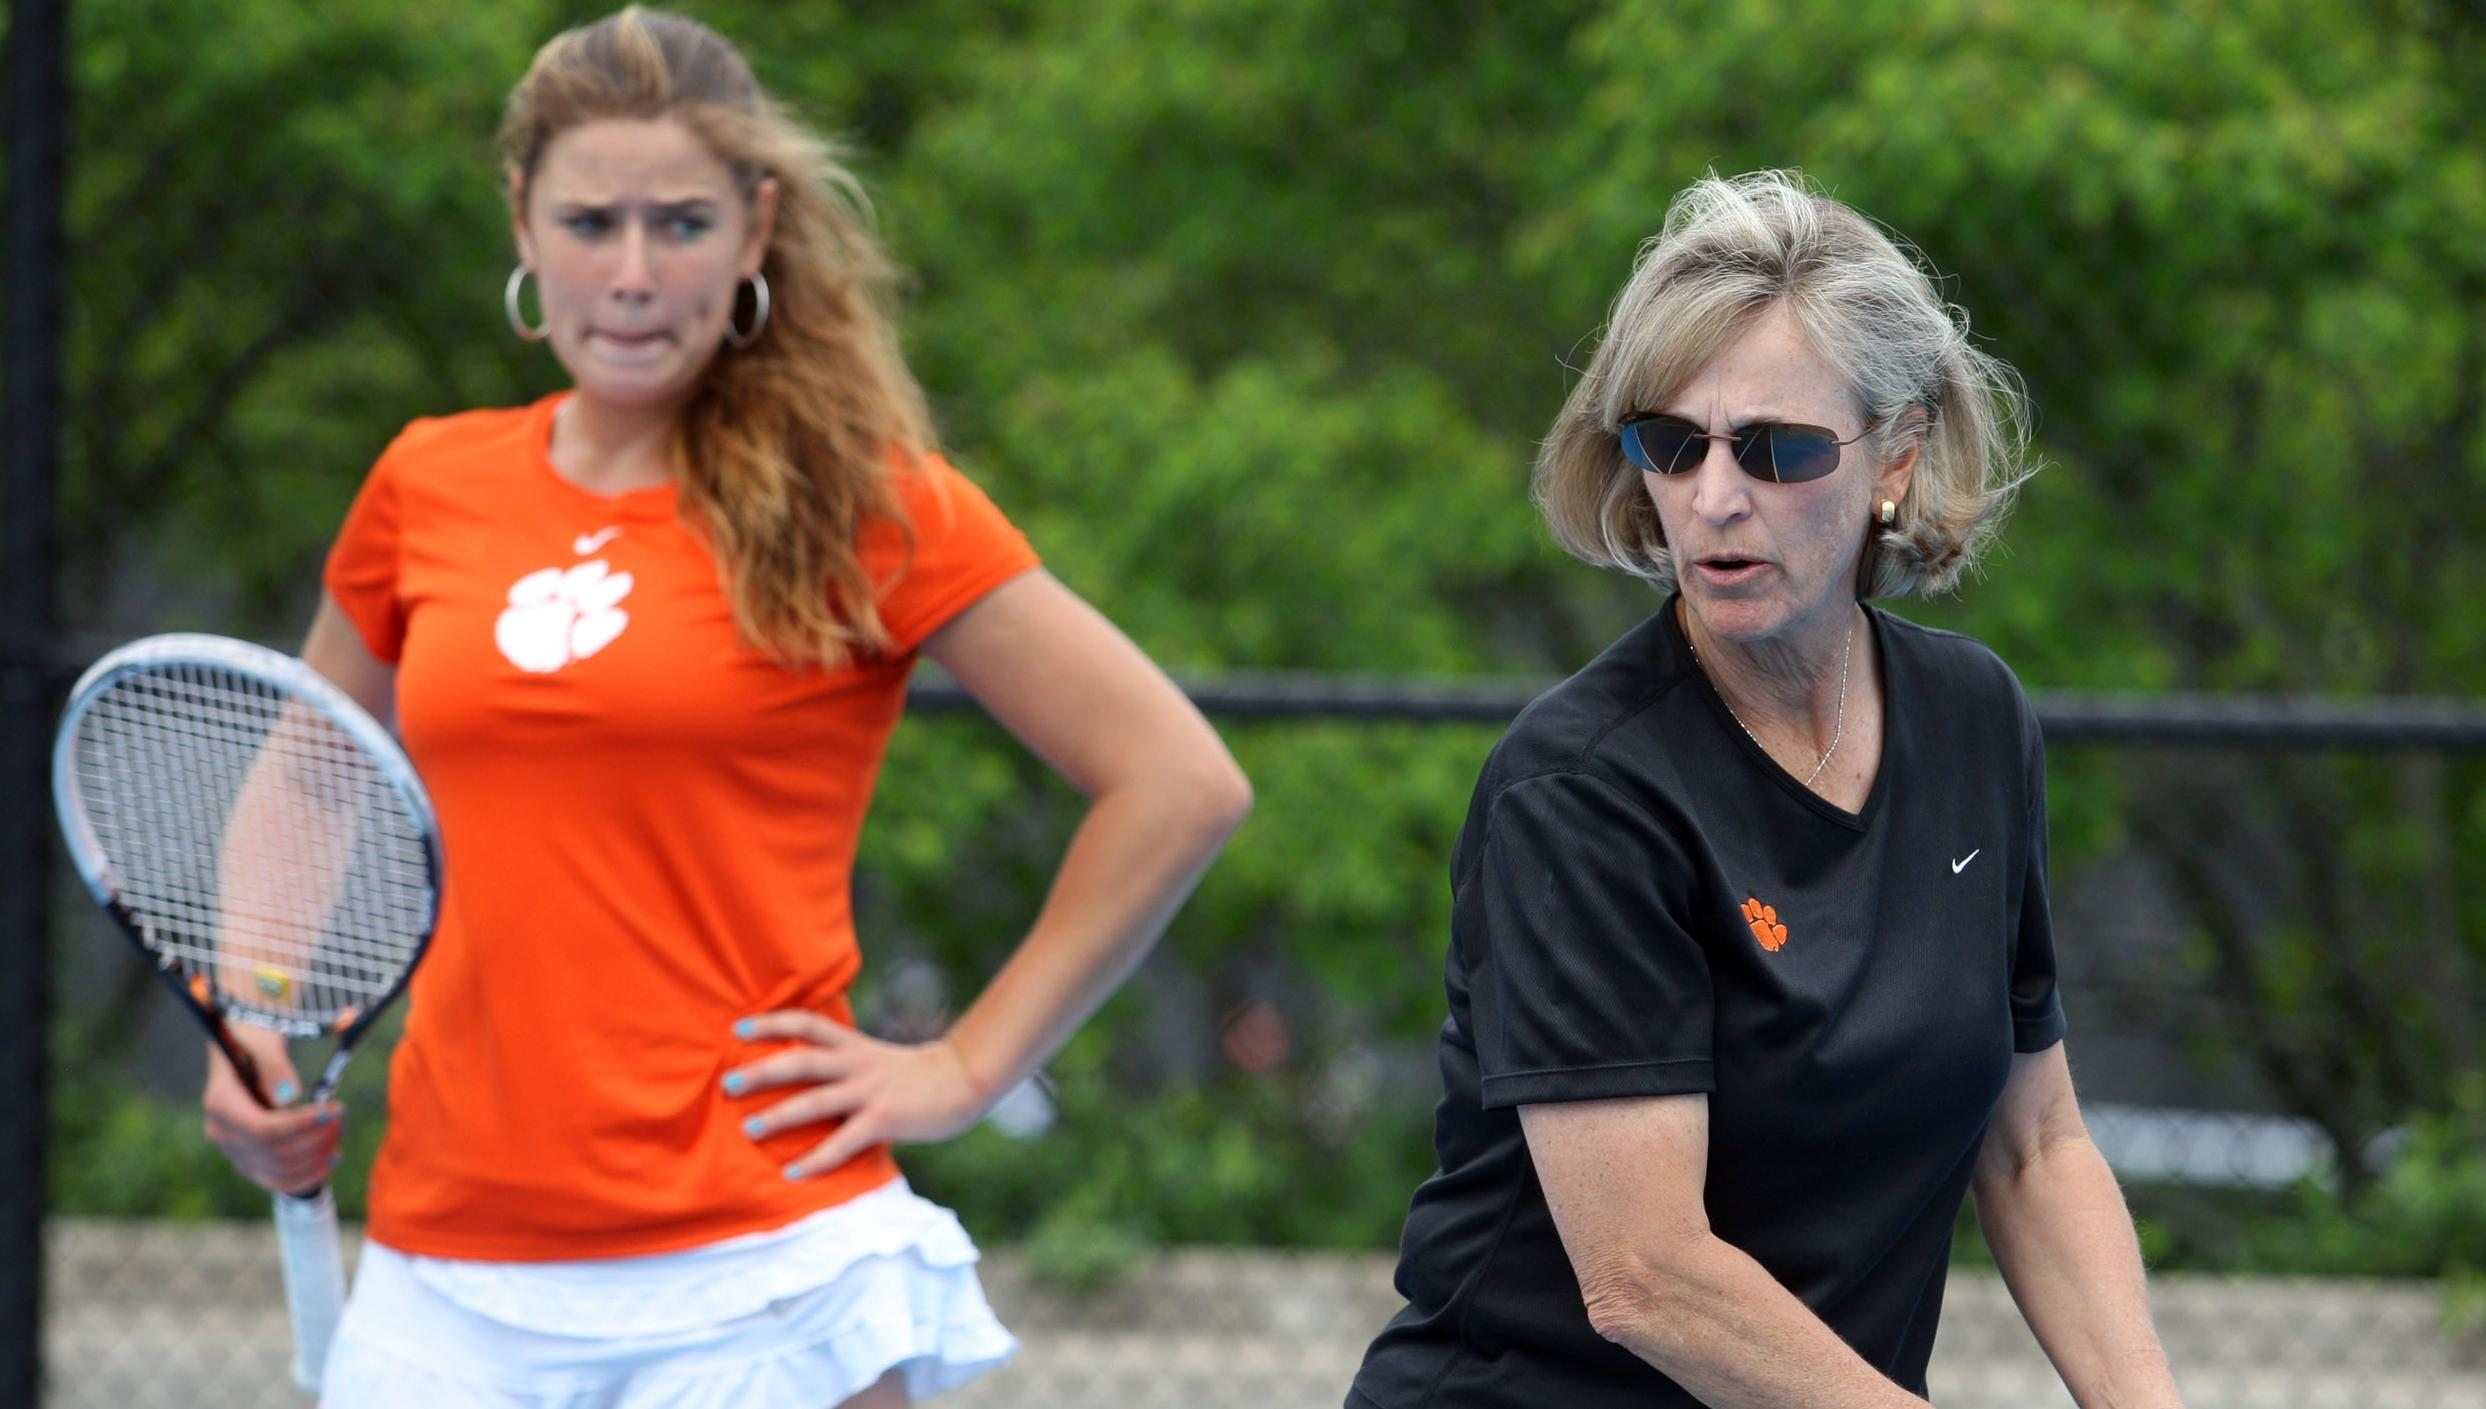 Women?s Tennis Opens Play at ITA Carolina Regionals Thursday